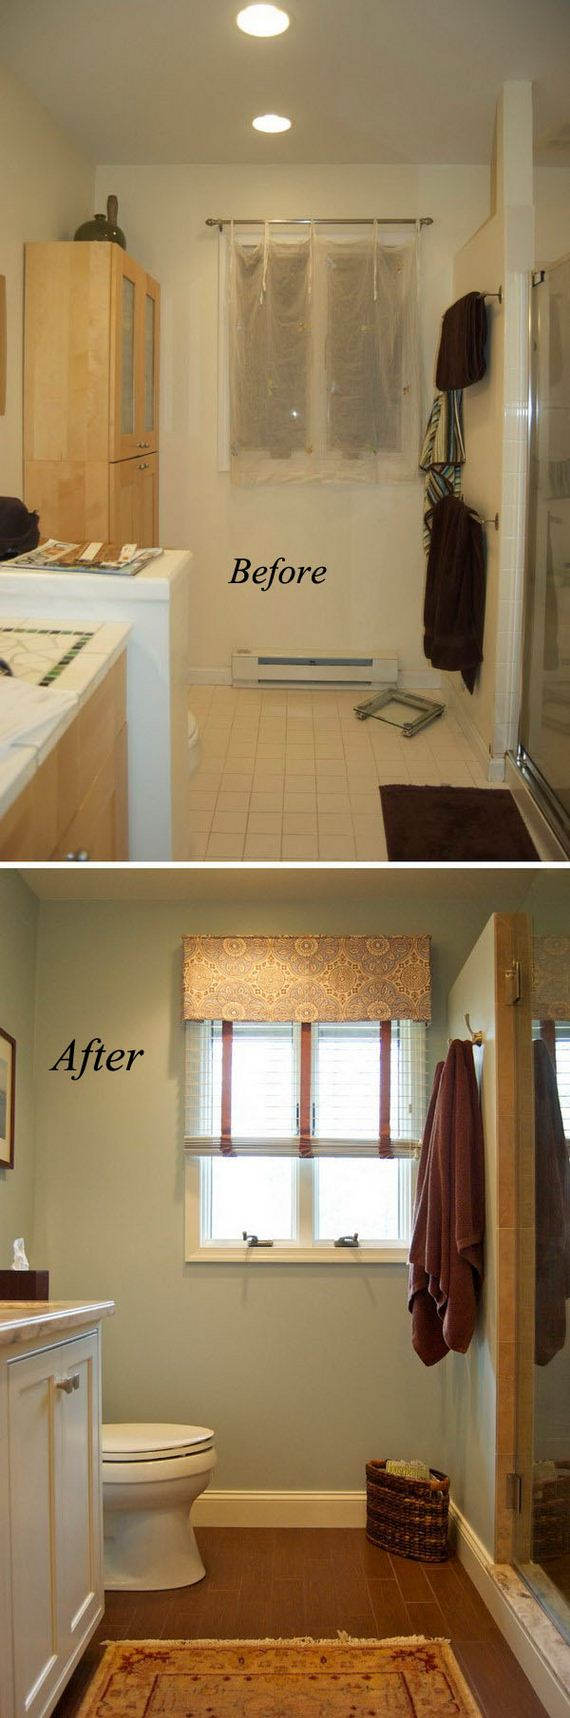 10-awesome-bathroom-makeovers